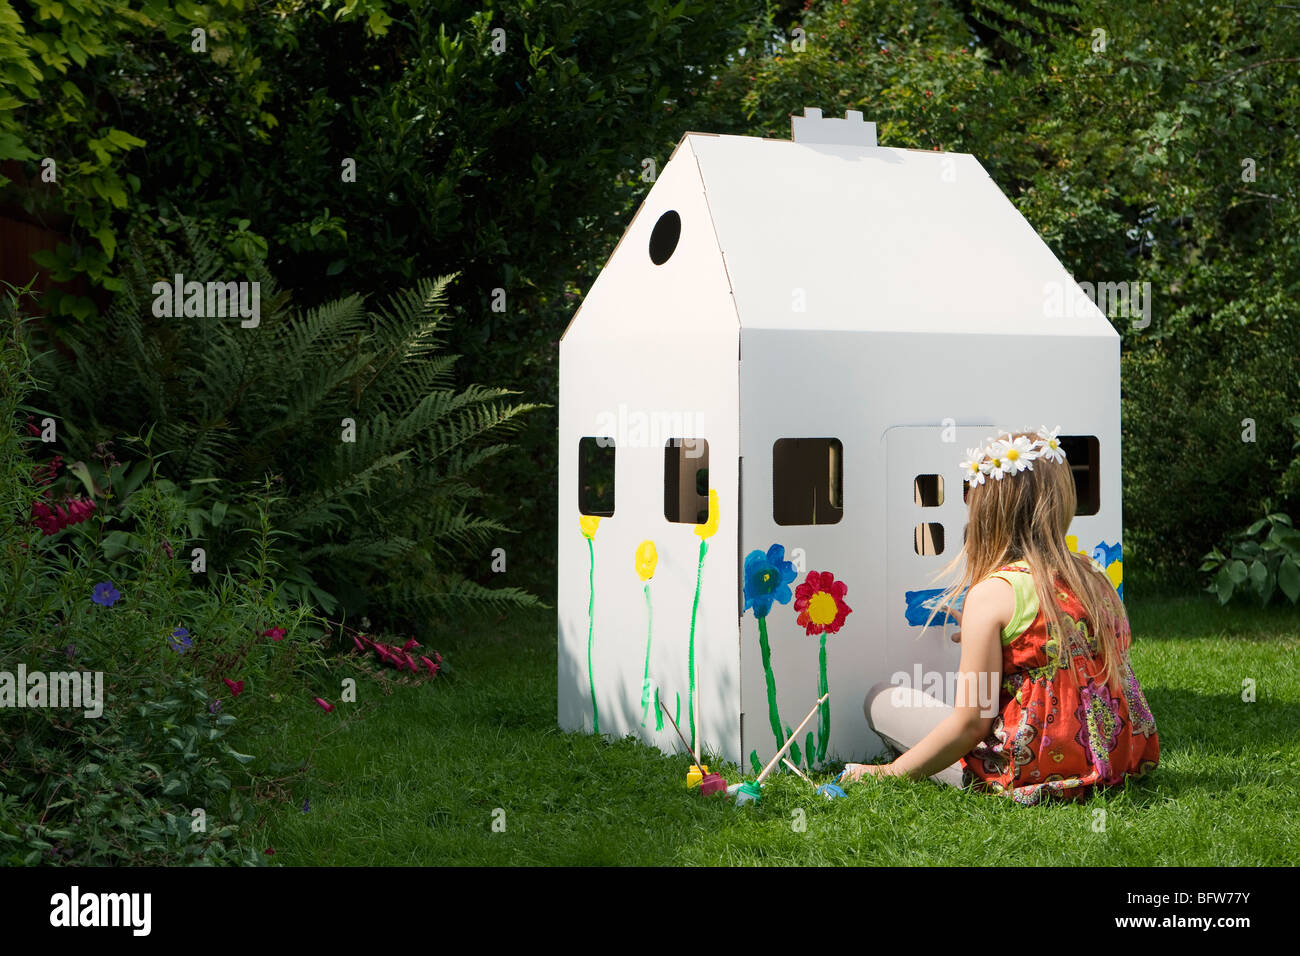 A girl painting a cardboard wendy house - Stock Image